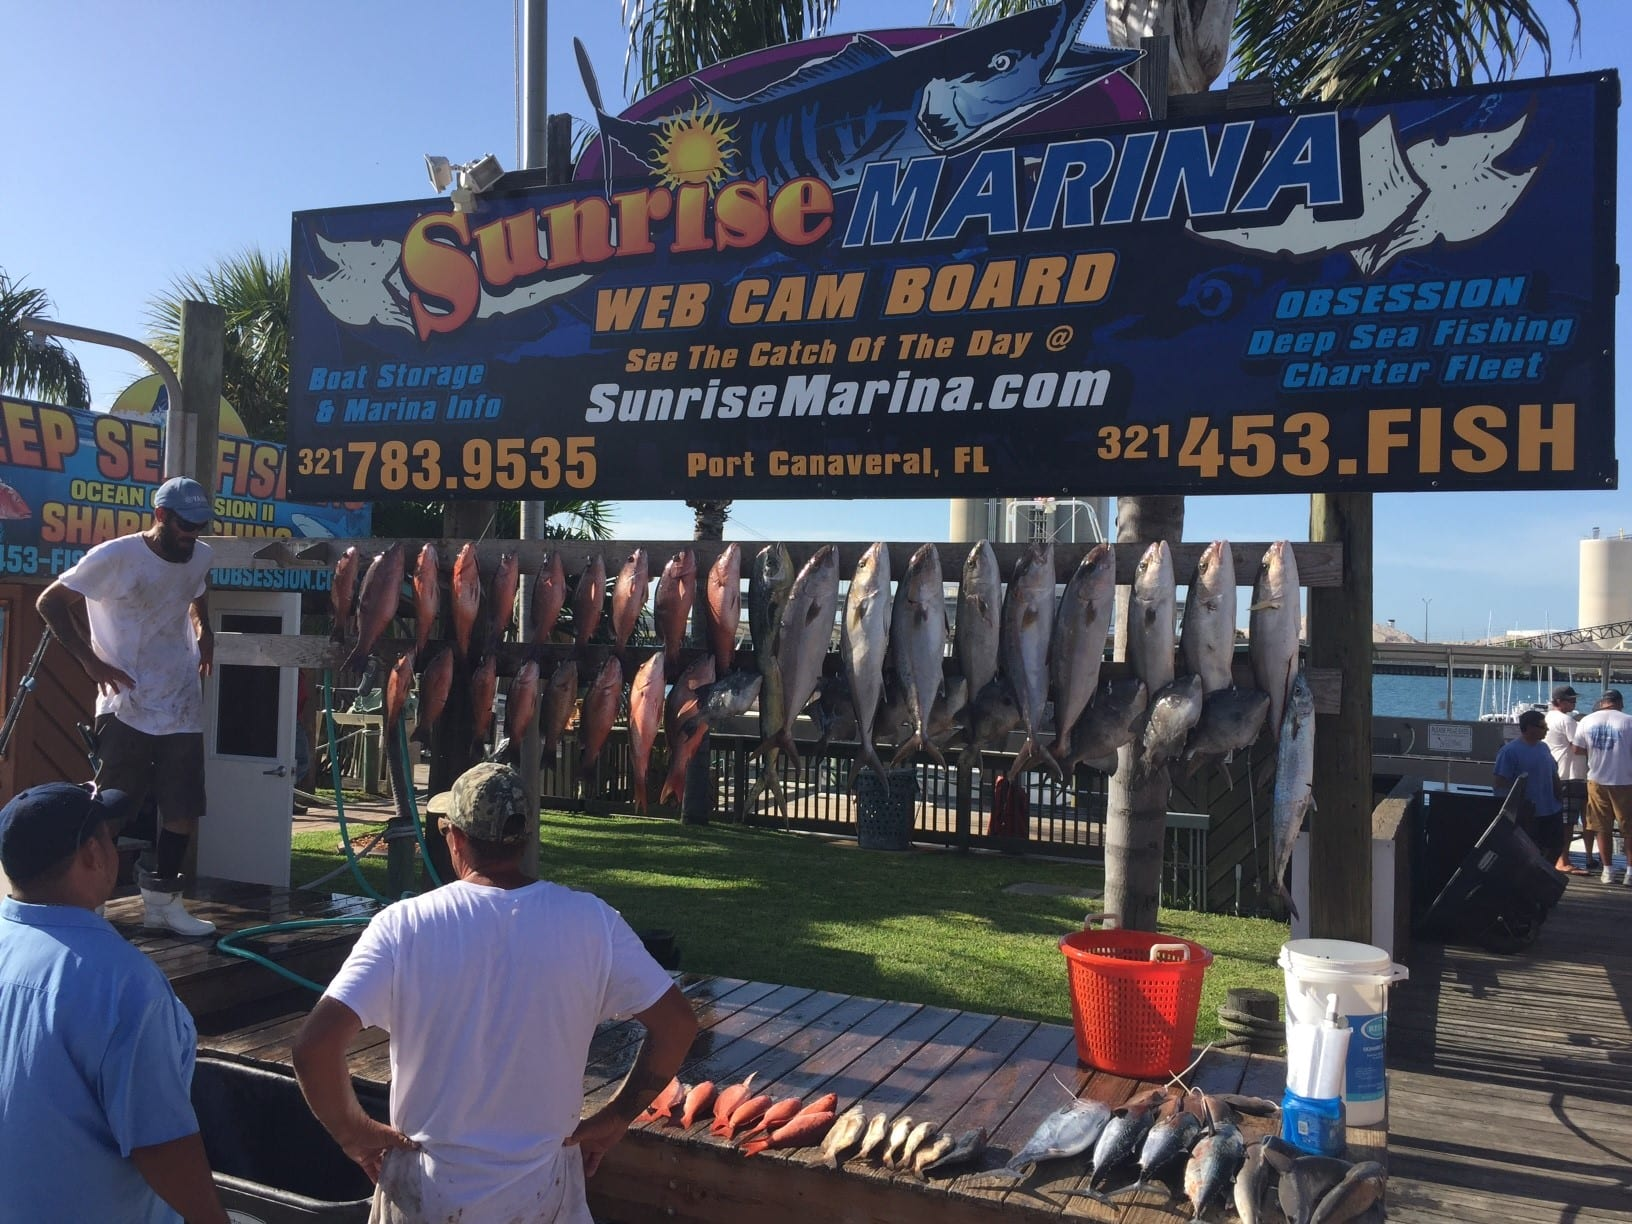 Deep Sea Fishing Port Canaveral catch